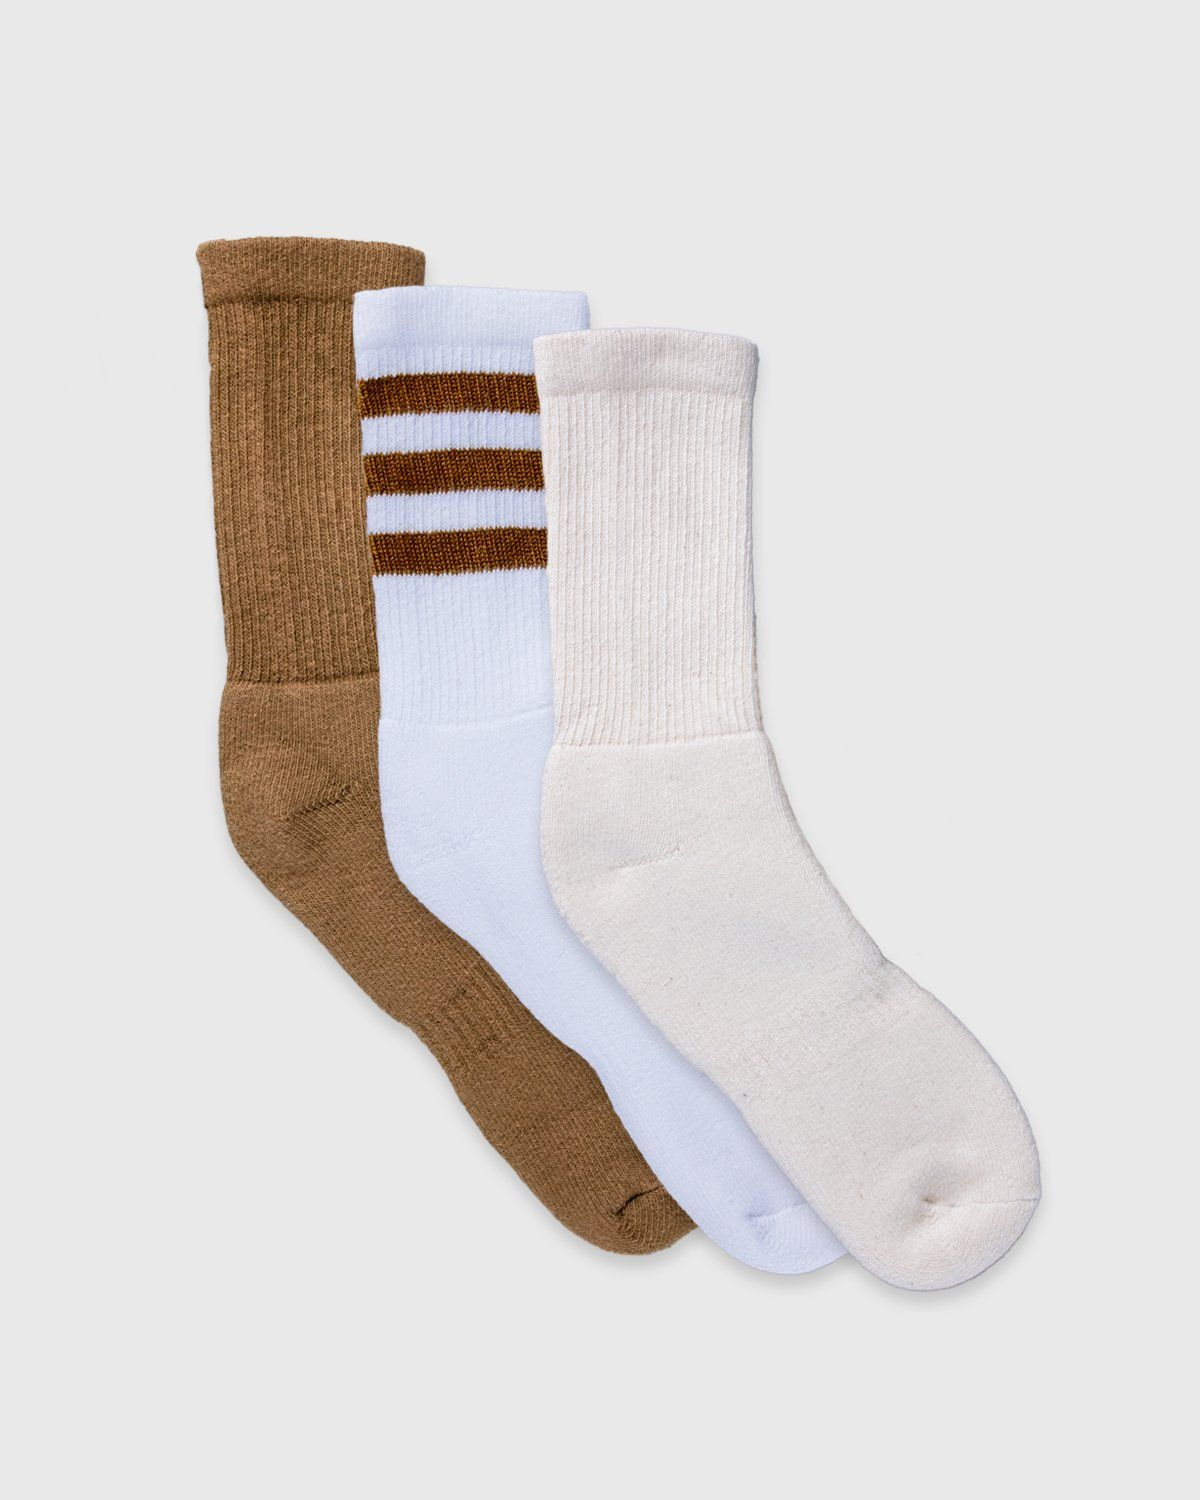 Darryl Brown — Sock Set Multicolour - Image 1